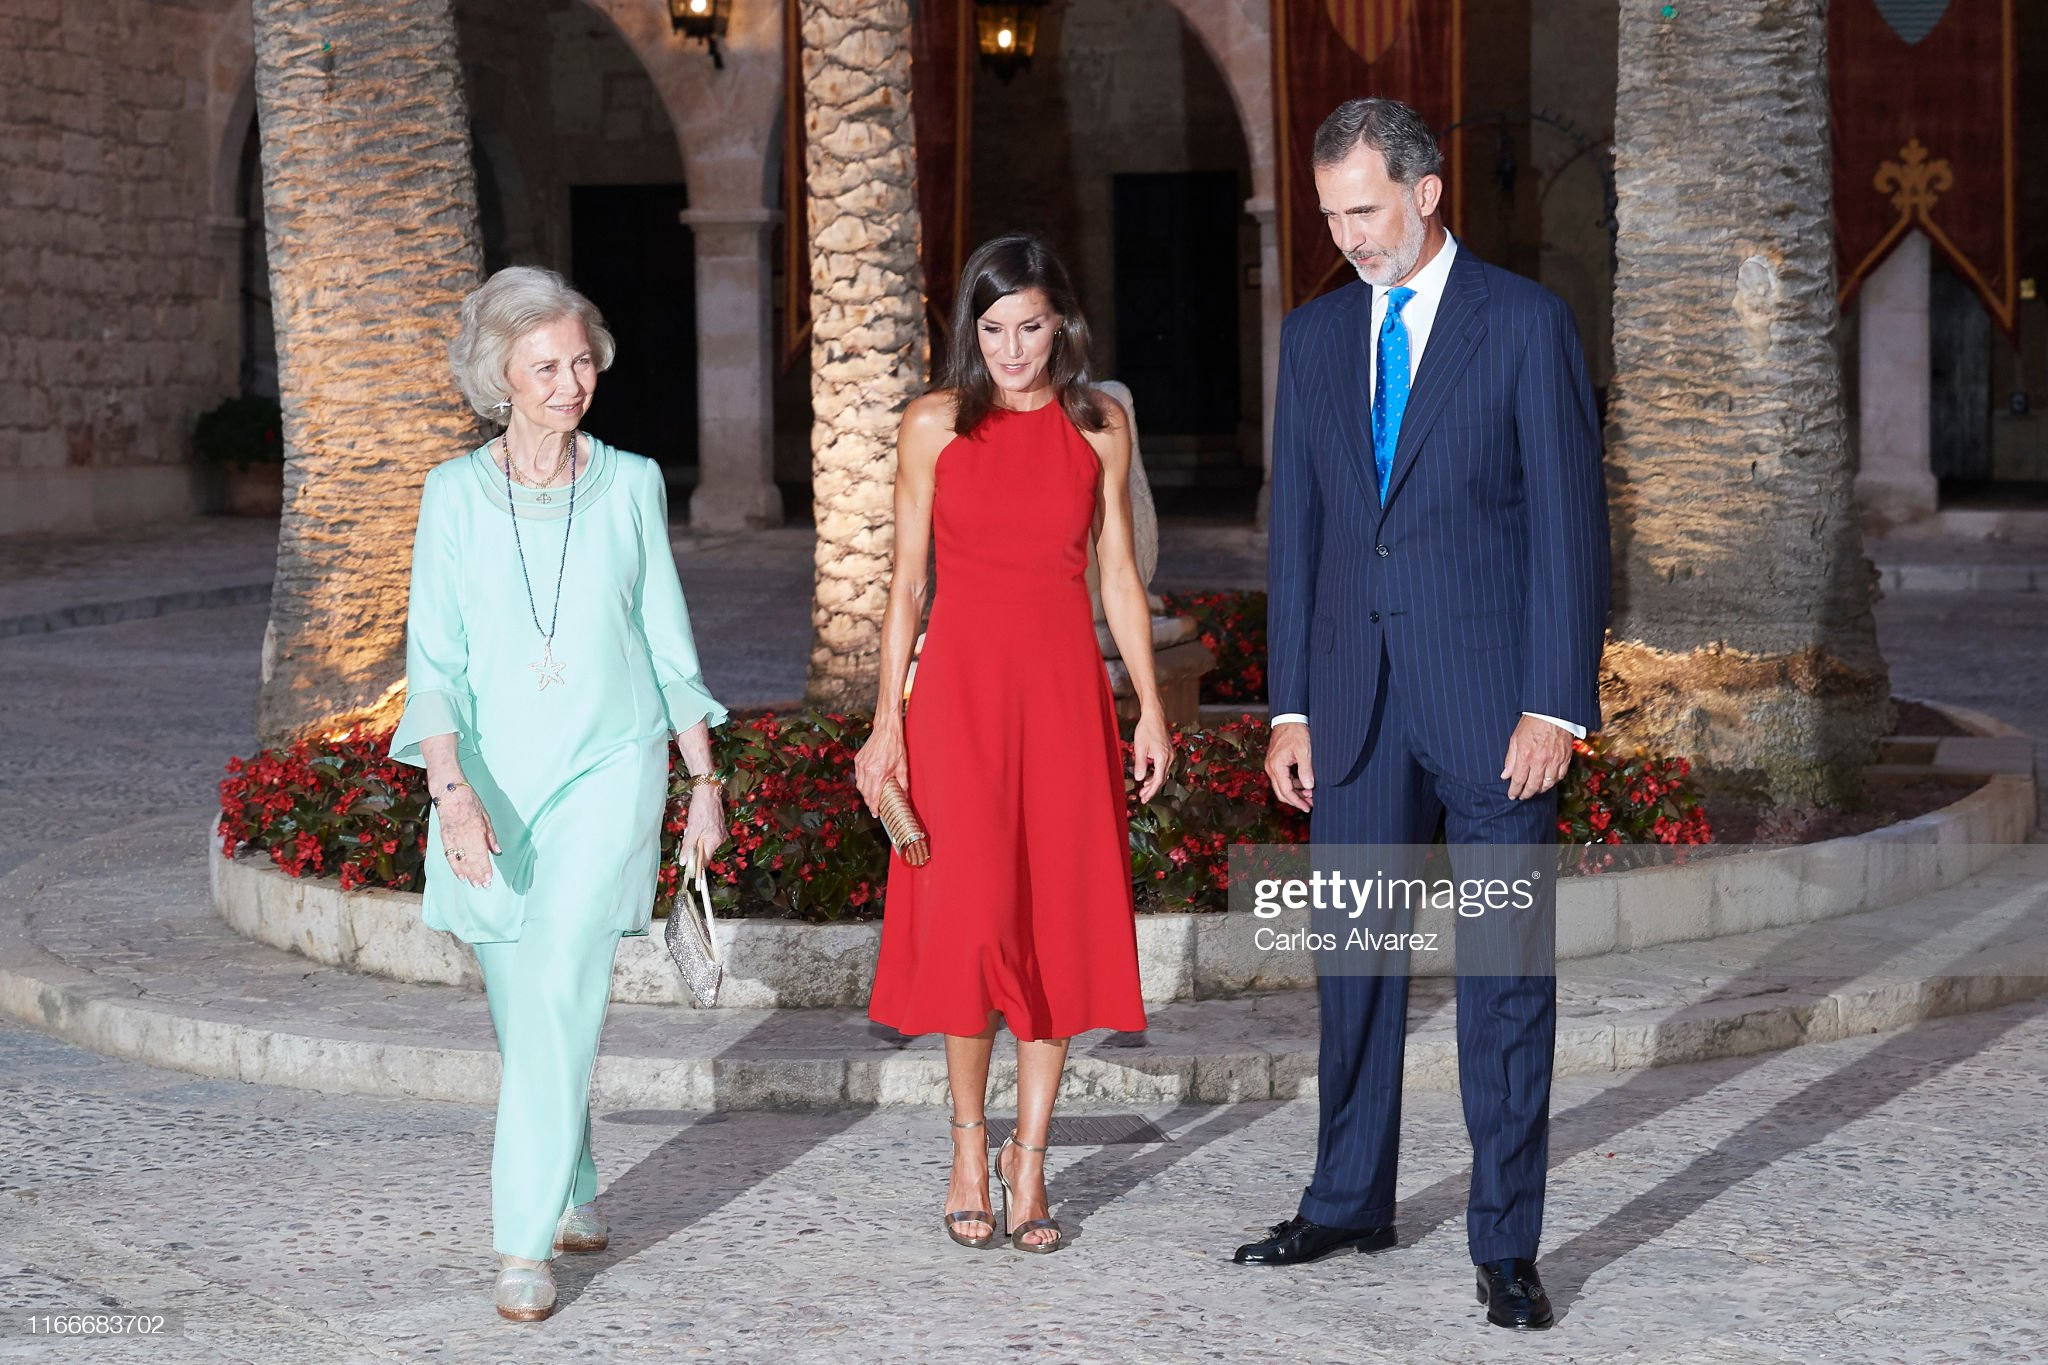 https://media.gettyimages.com/photos/king-felipe-vi-of-spain-queen-letizia-of-spain-and-queen-sofia-host-a-picture-id1166683702?s=2048x2048